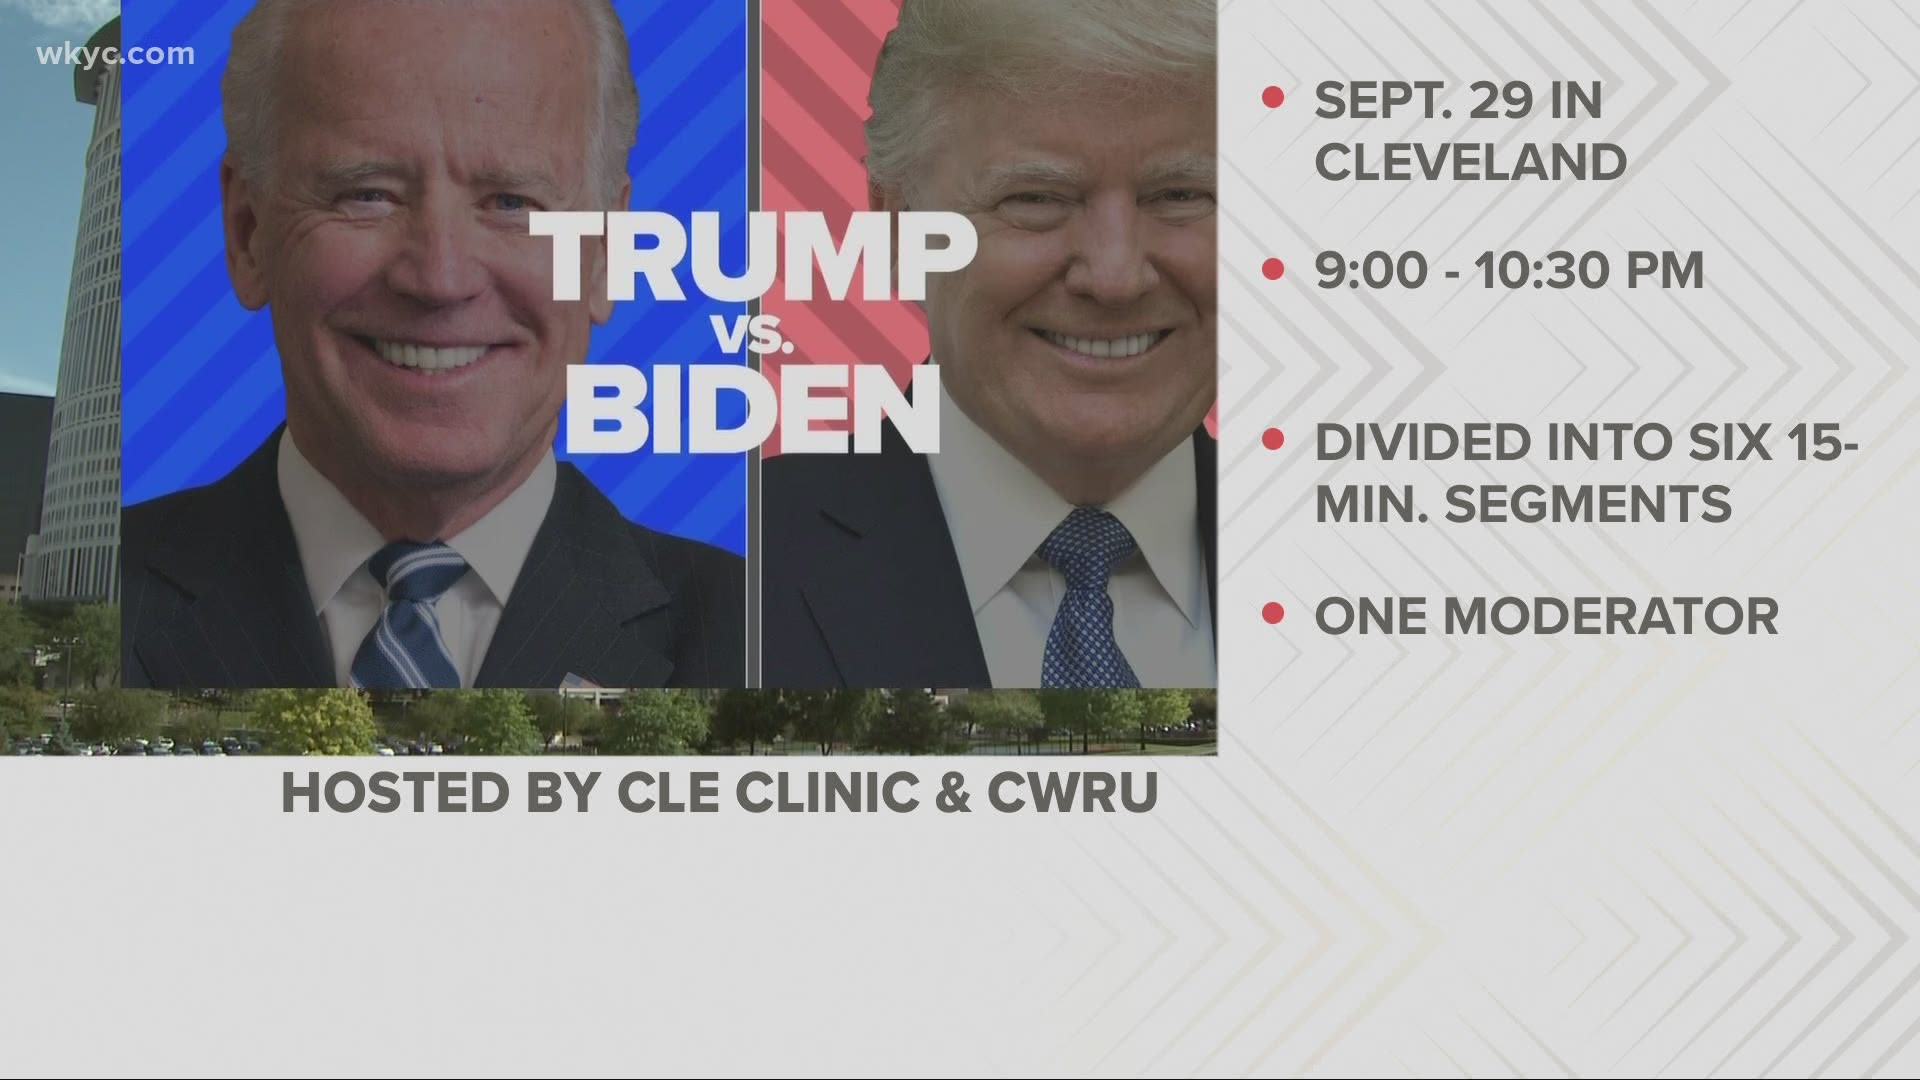 Officials Release New Details On First Presidential Debate